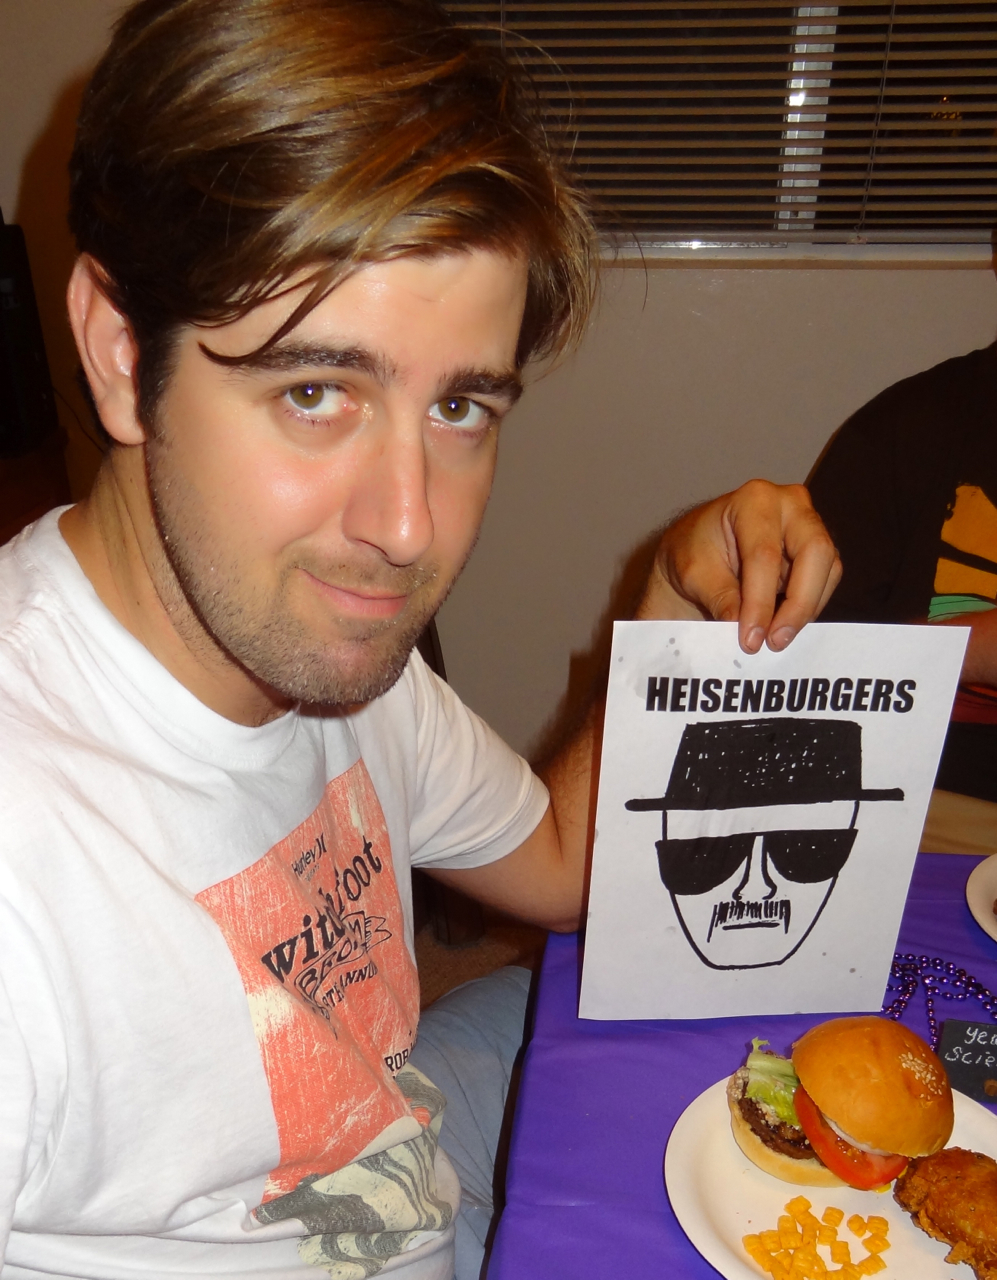 Heisenburgers